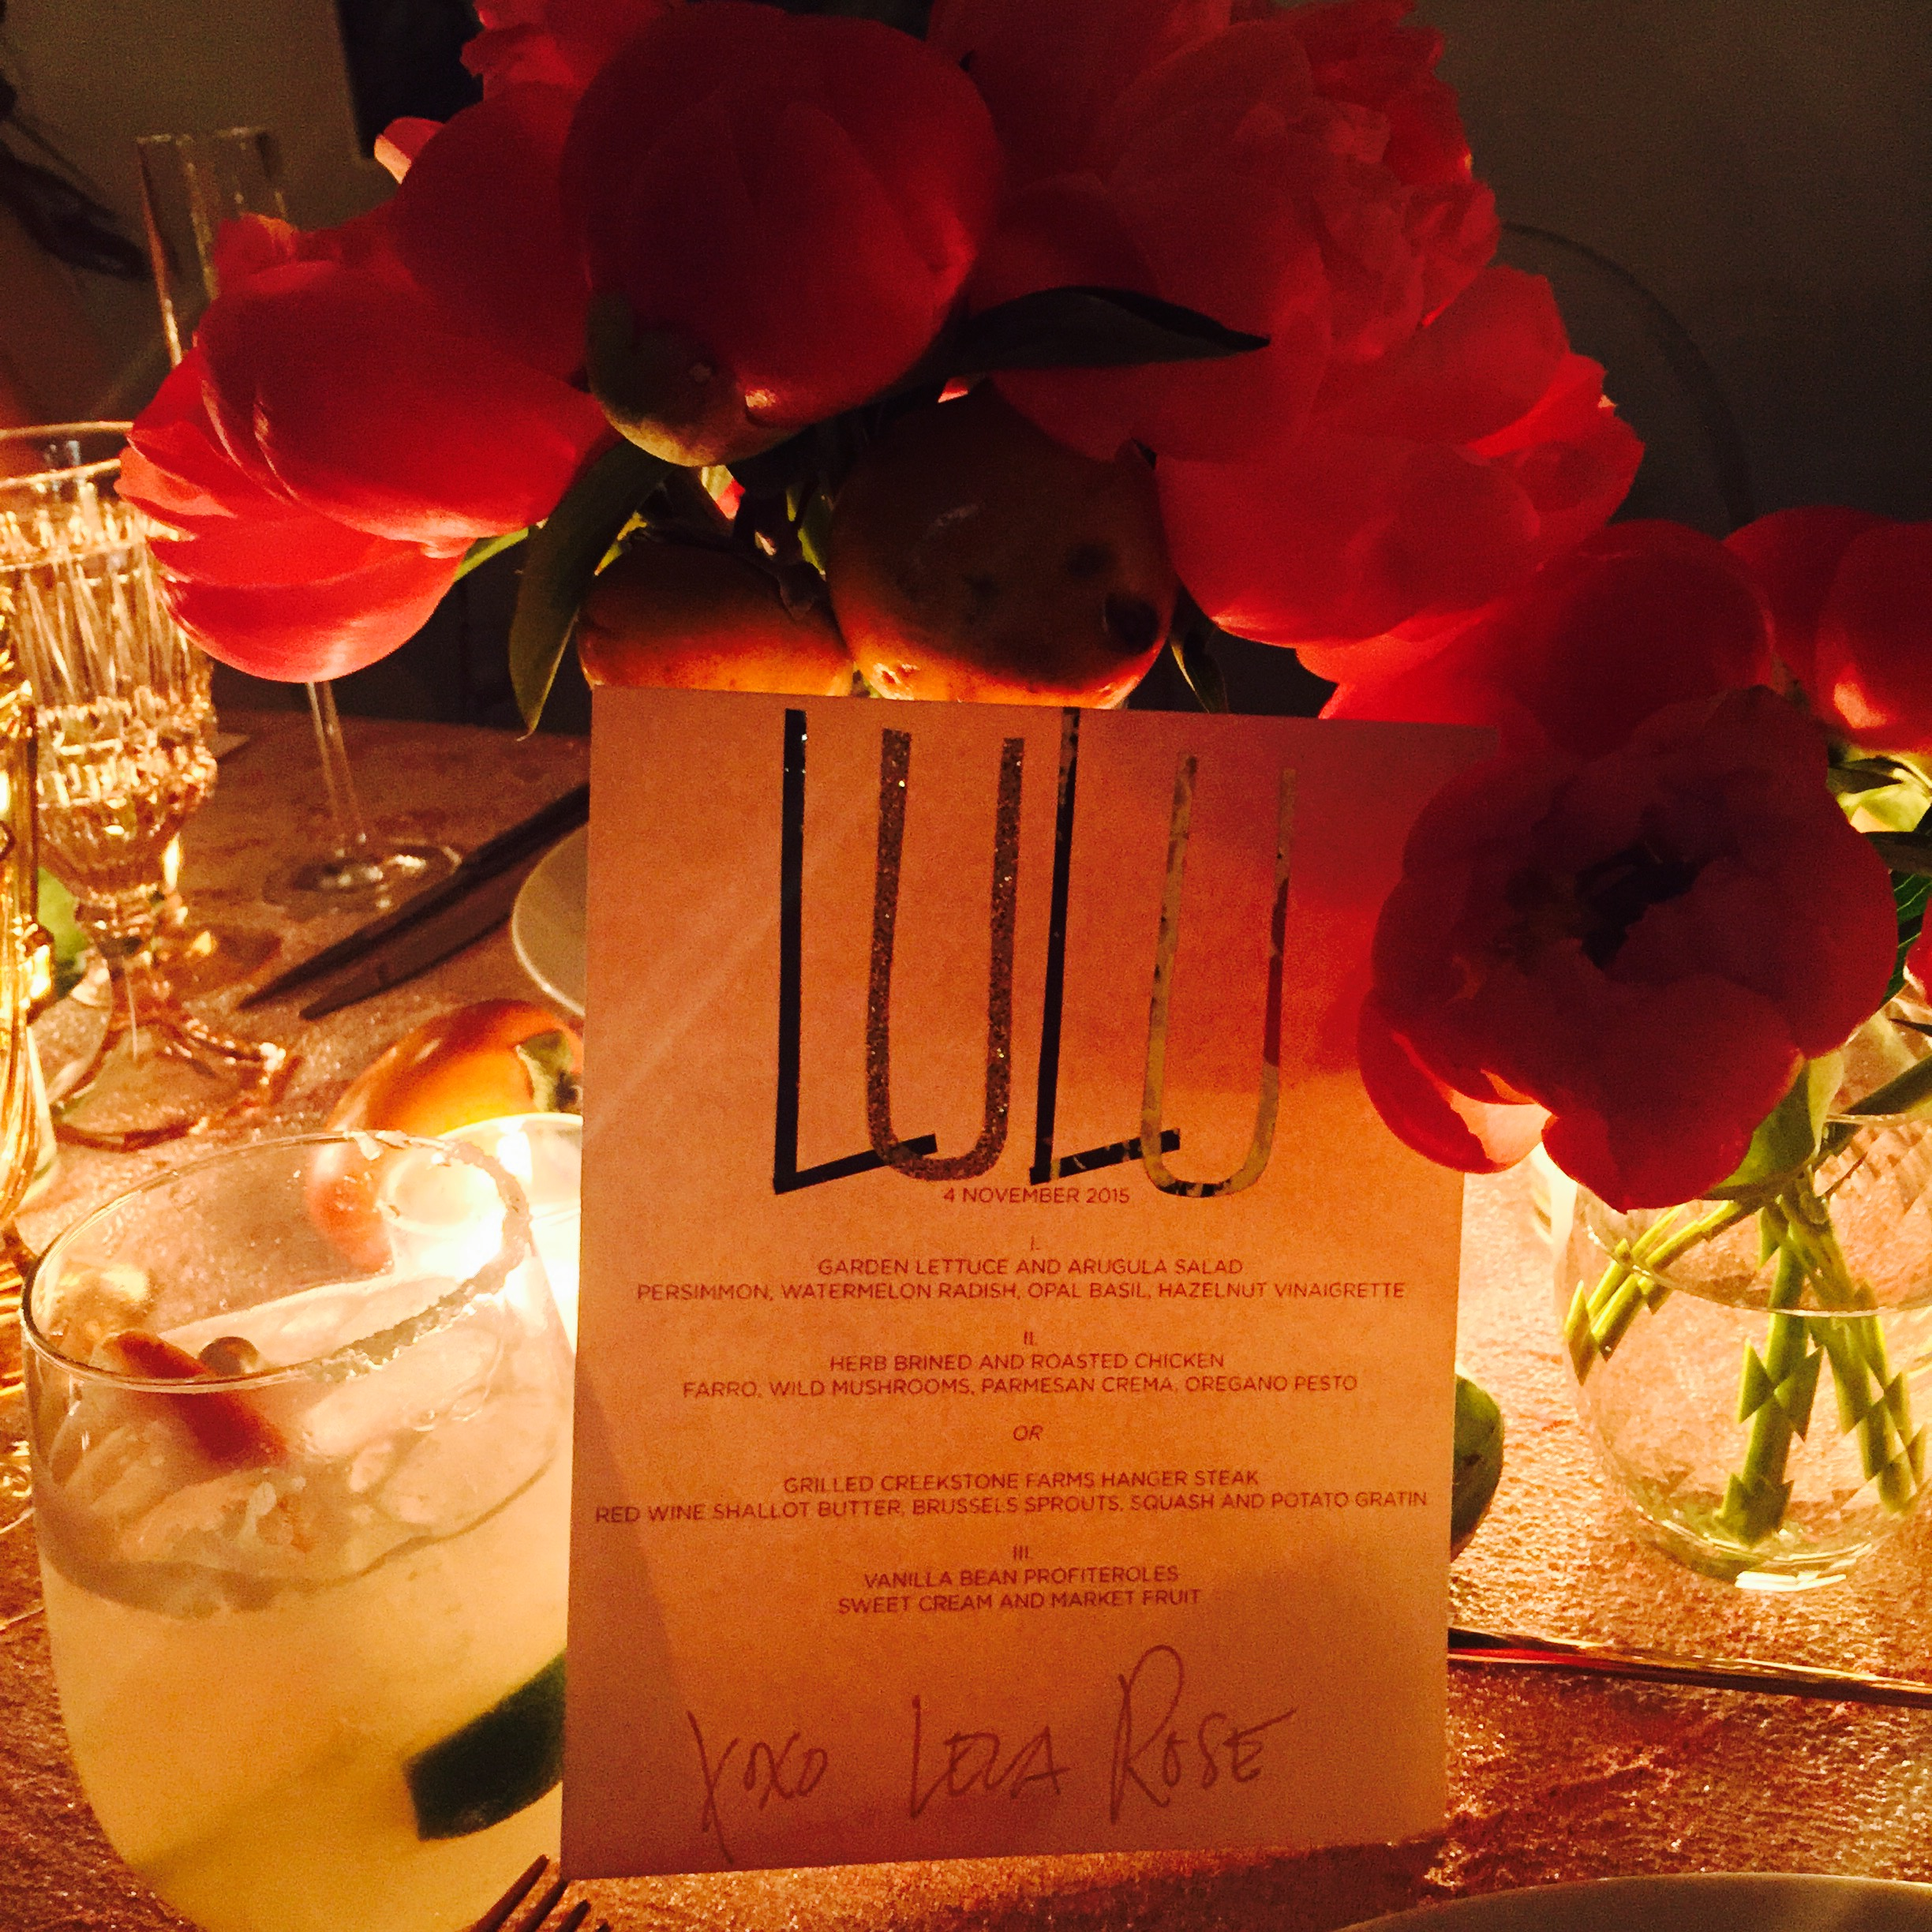 Lela customized our menus with our names at the top - what a great idea! Adding a personal touch to your tablescape adds another layer of thoughtfulness that your guests will appreciate (I know I did)!